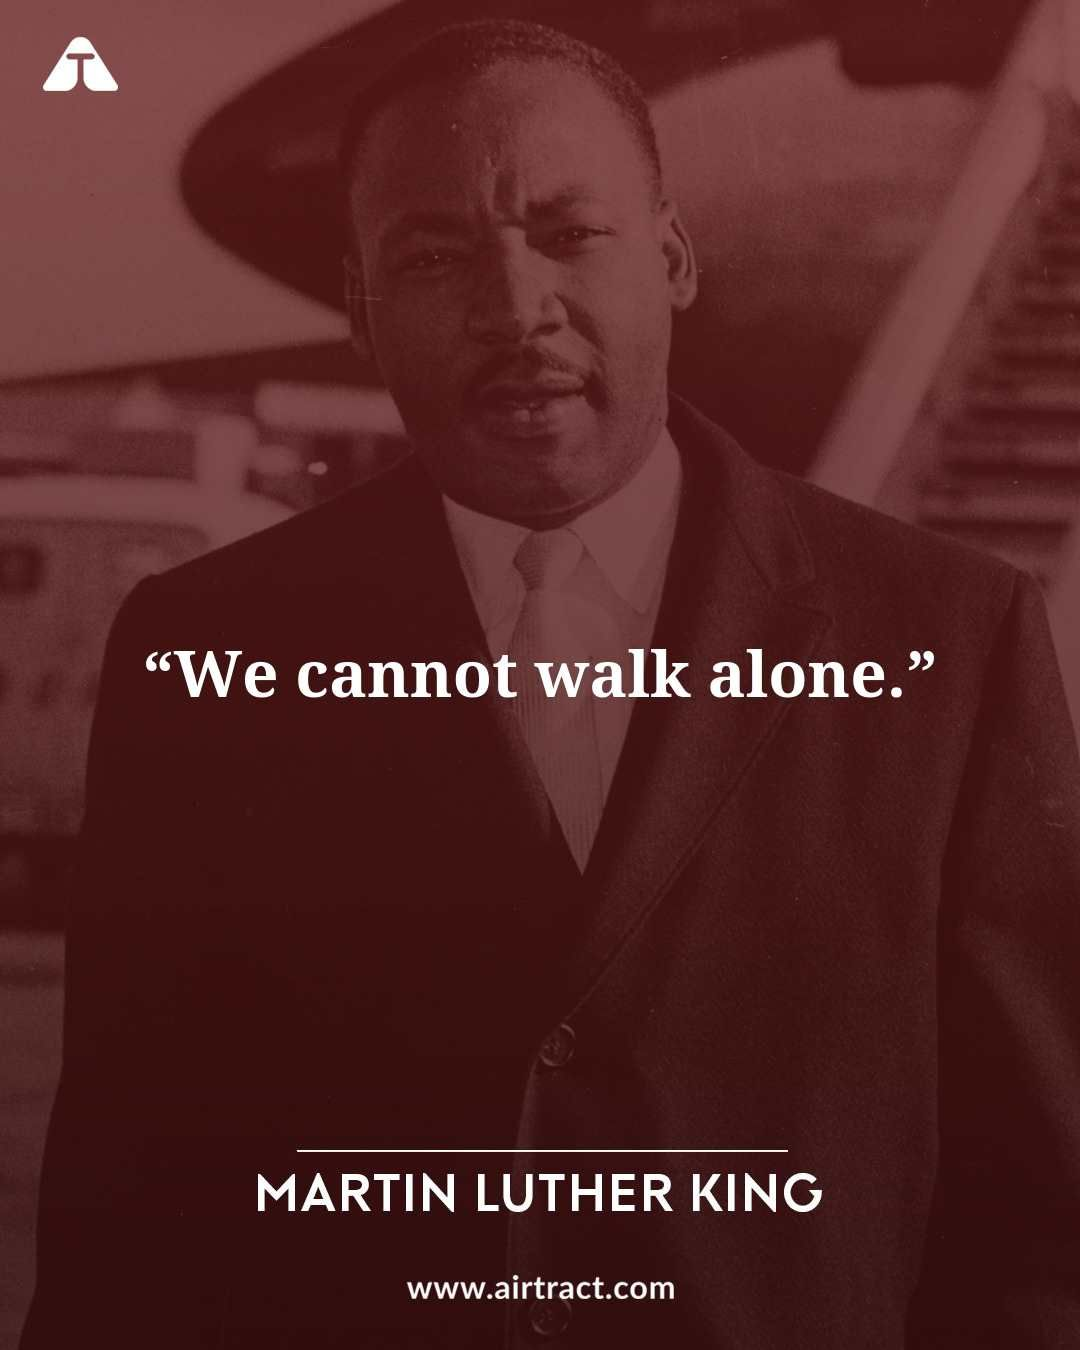 We Cannot Walk Alone Martin Luther King Martinlutherking Martinlutherkingjr Mart Martin Luther King Jr Quotes Martin Luther King Martin Luther King Quotes